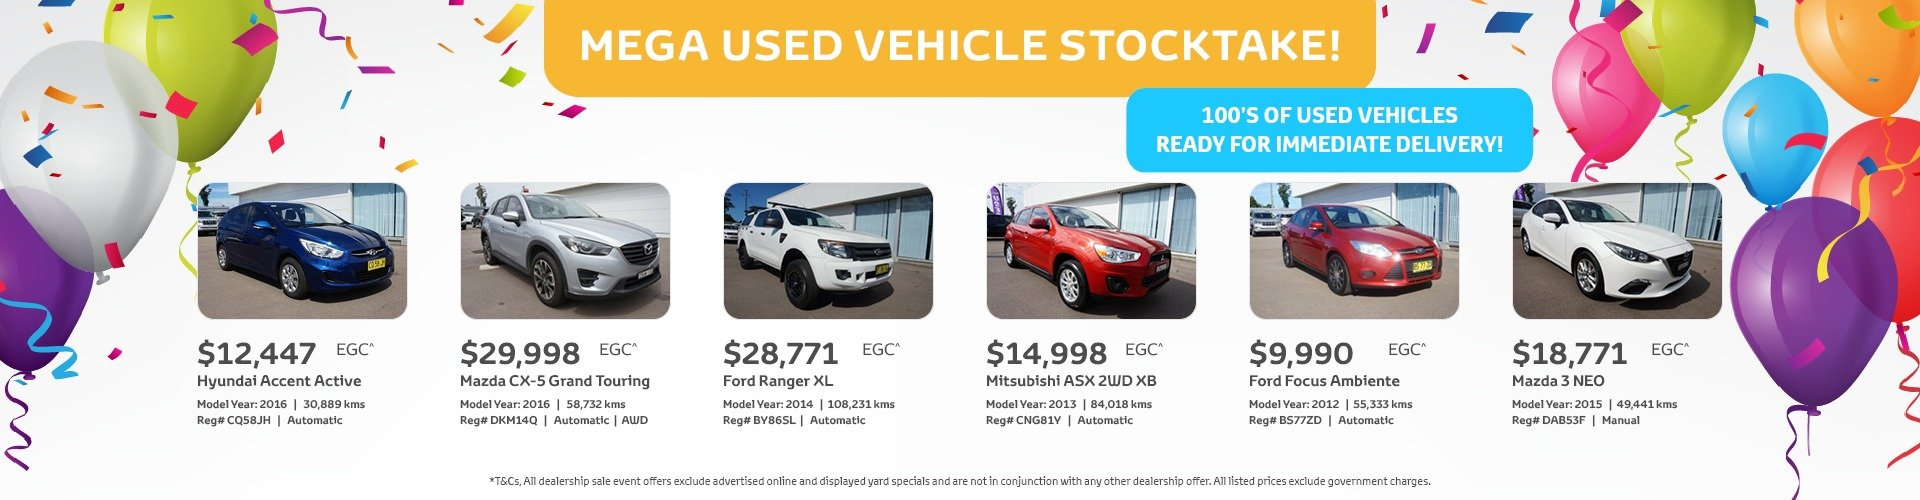 Cardiff Toyota Used Car Specials